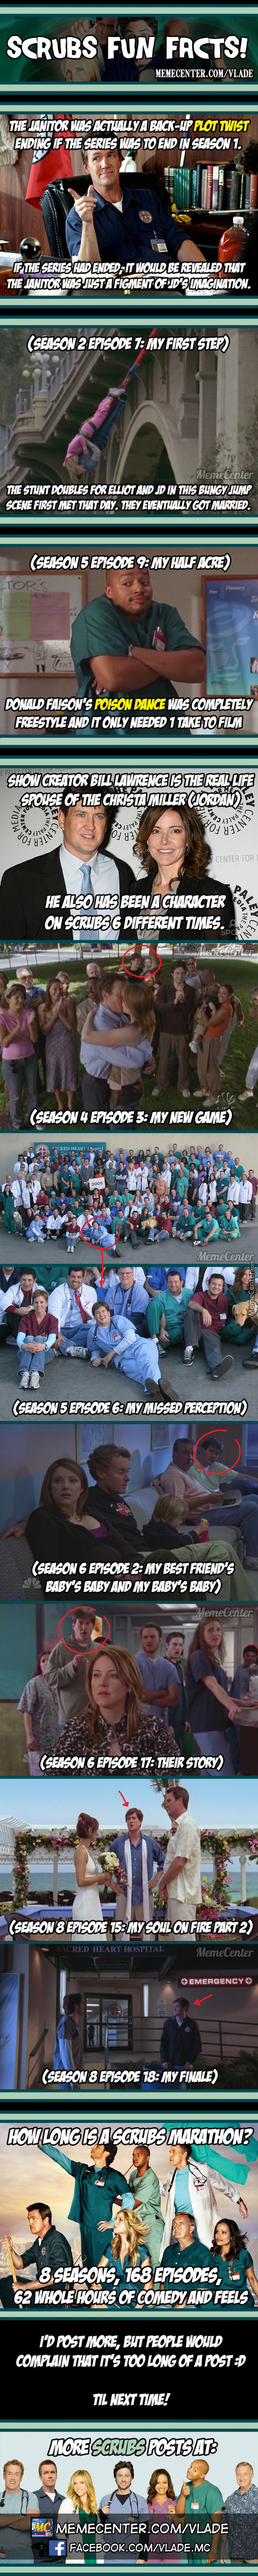 For The Love Of Scrubs!